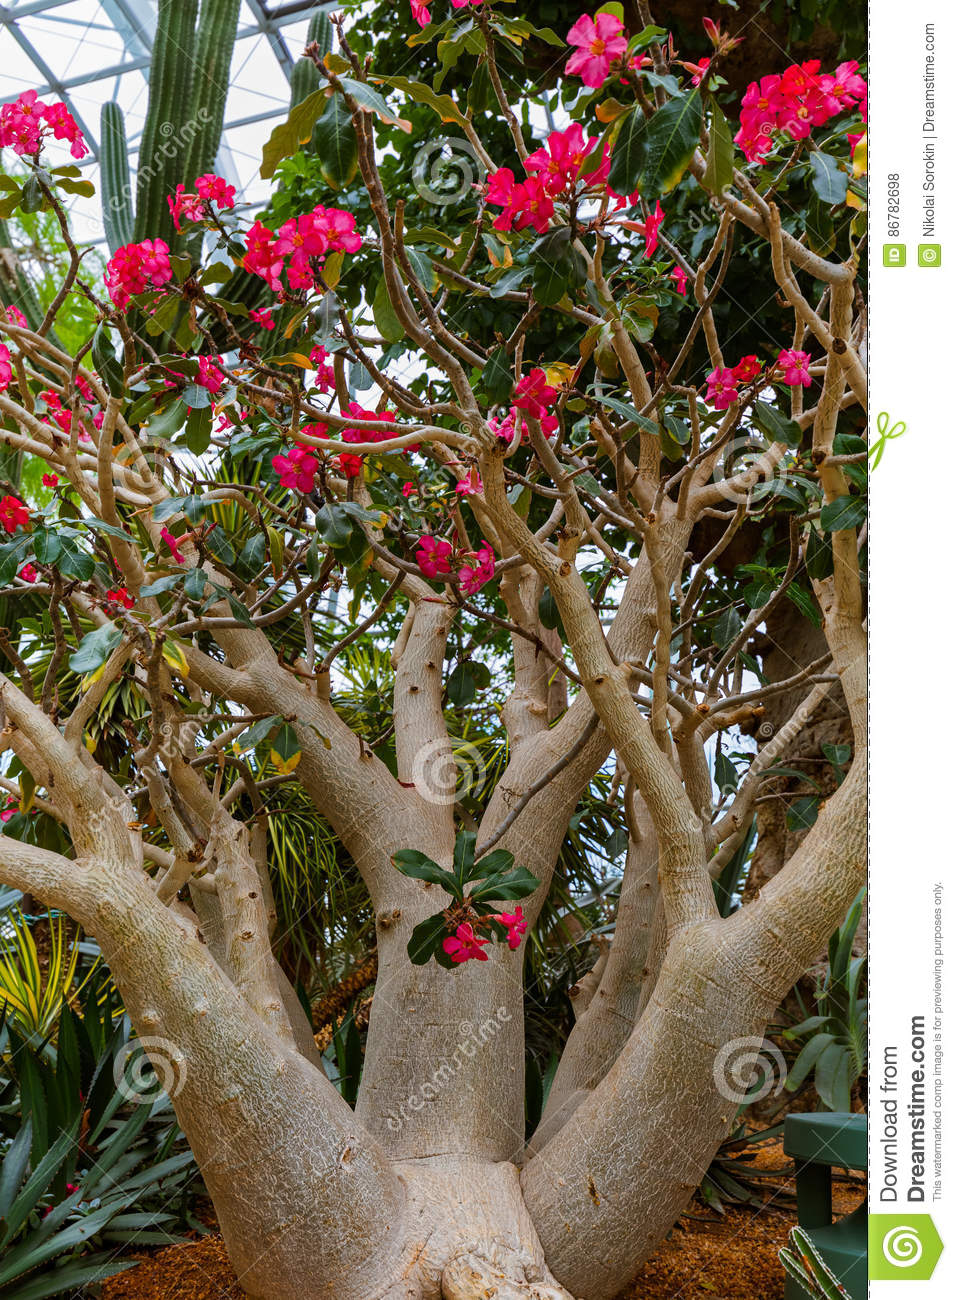 Trees At Gardens By The Bay In Singapore Stock Photo - Image of ...